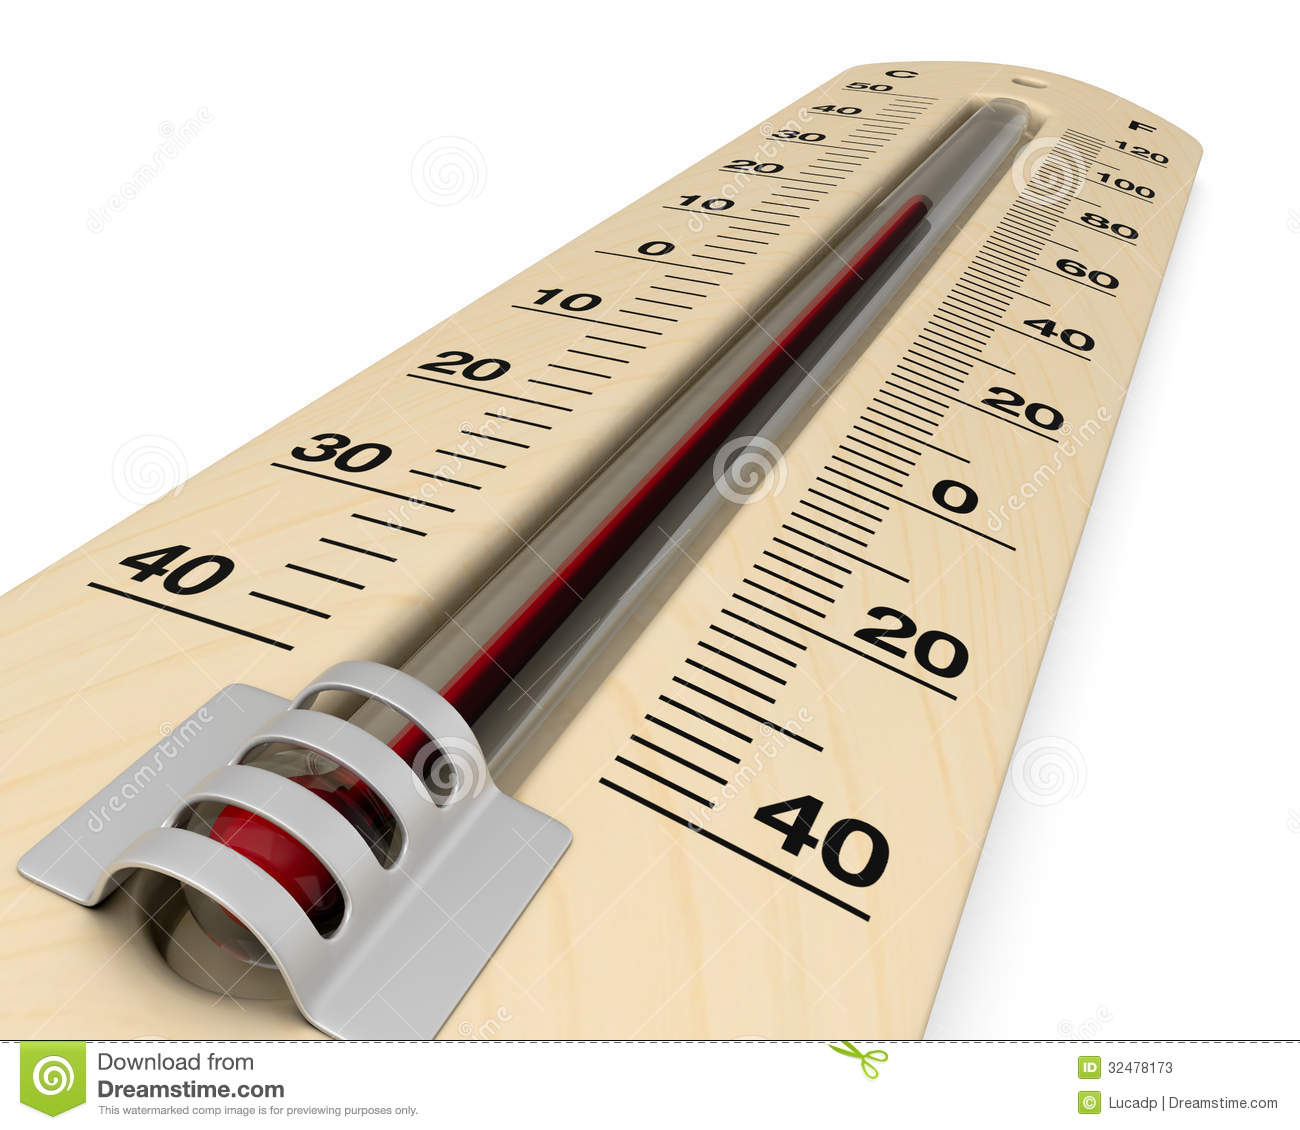 Analog thermometer stock illustration. Image of object ...